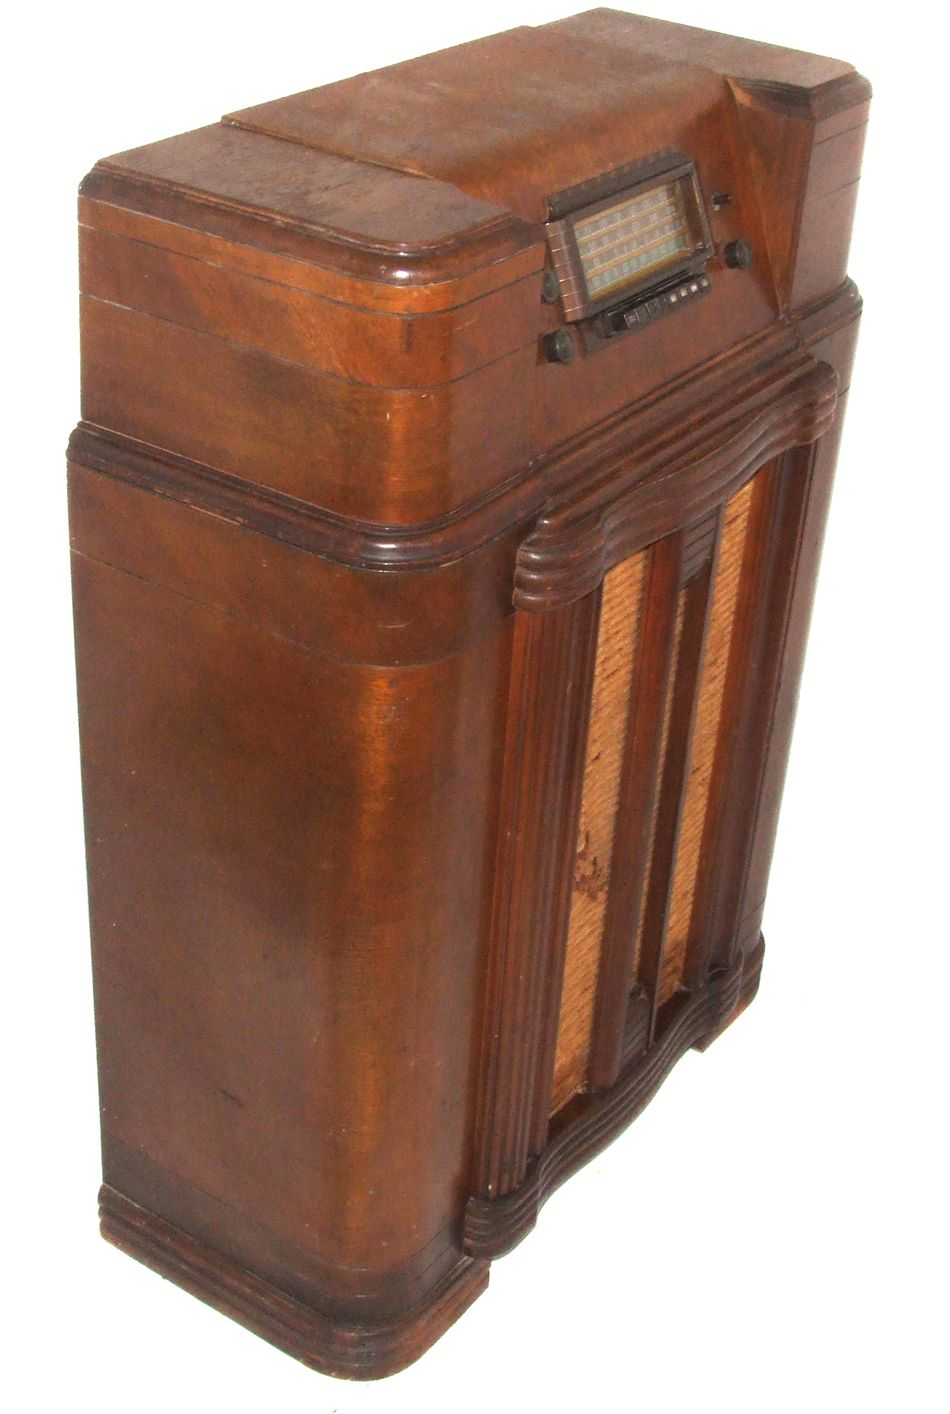 Sears Silvertone Wood Cased Floor Model Tube Radio